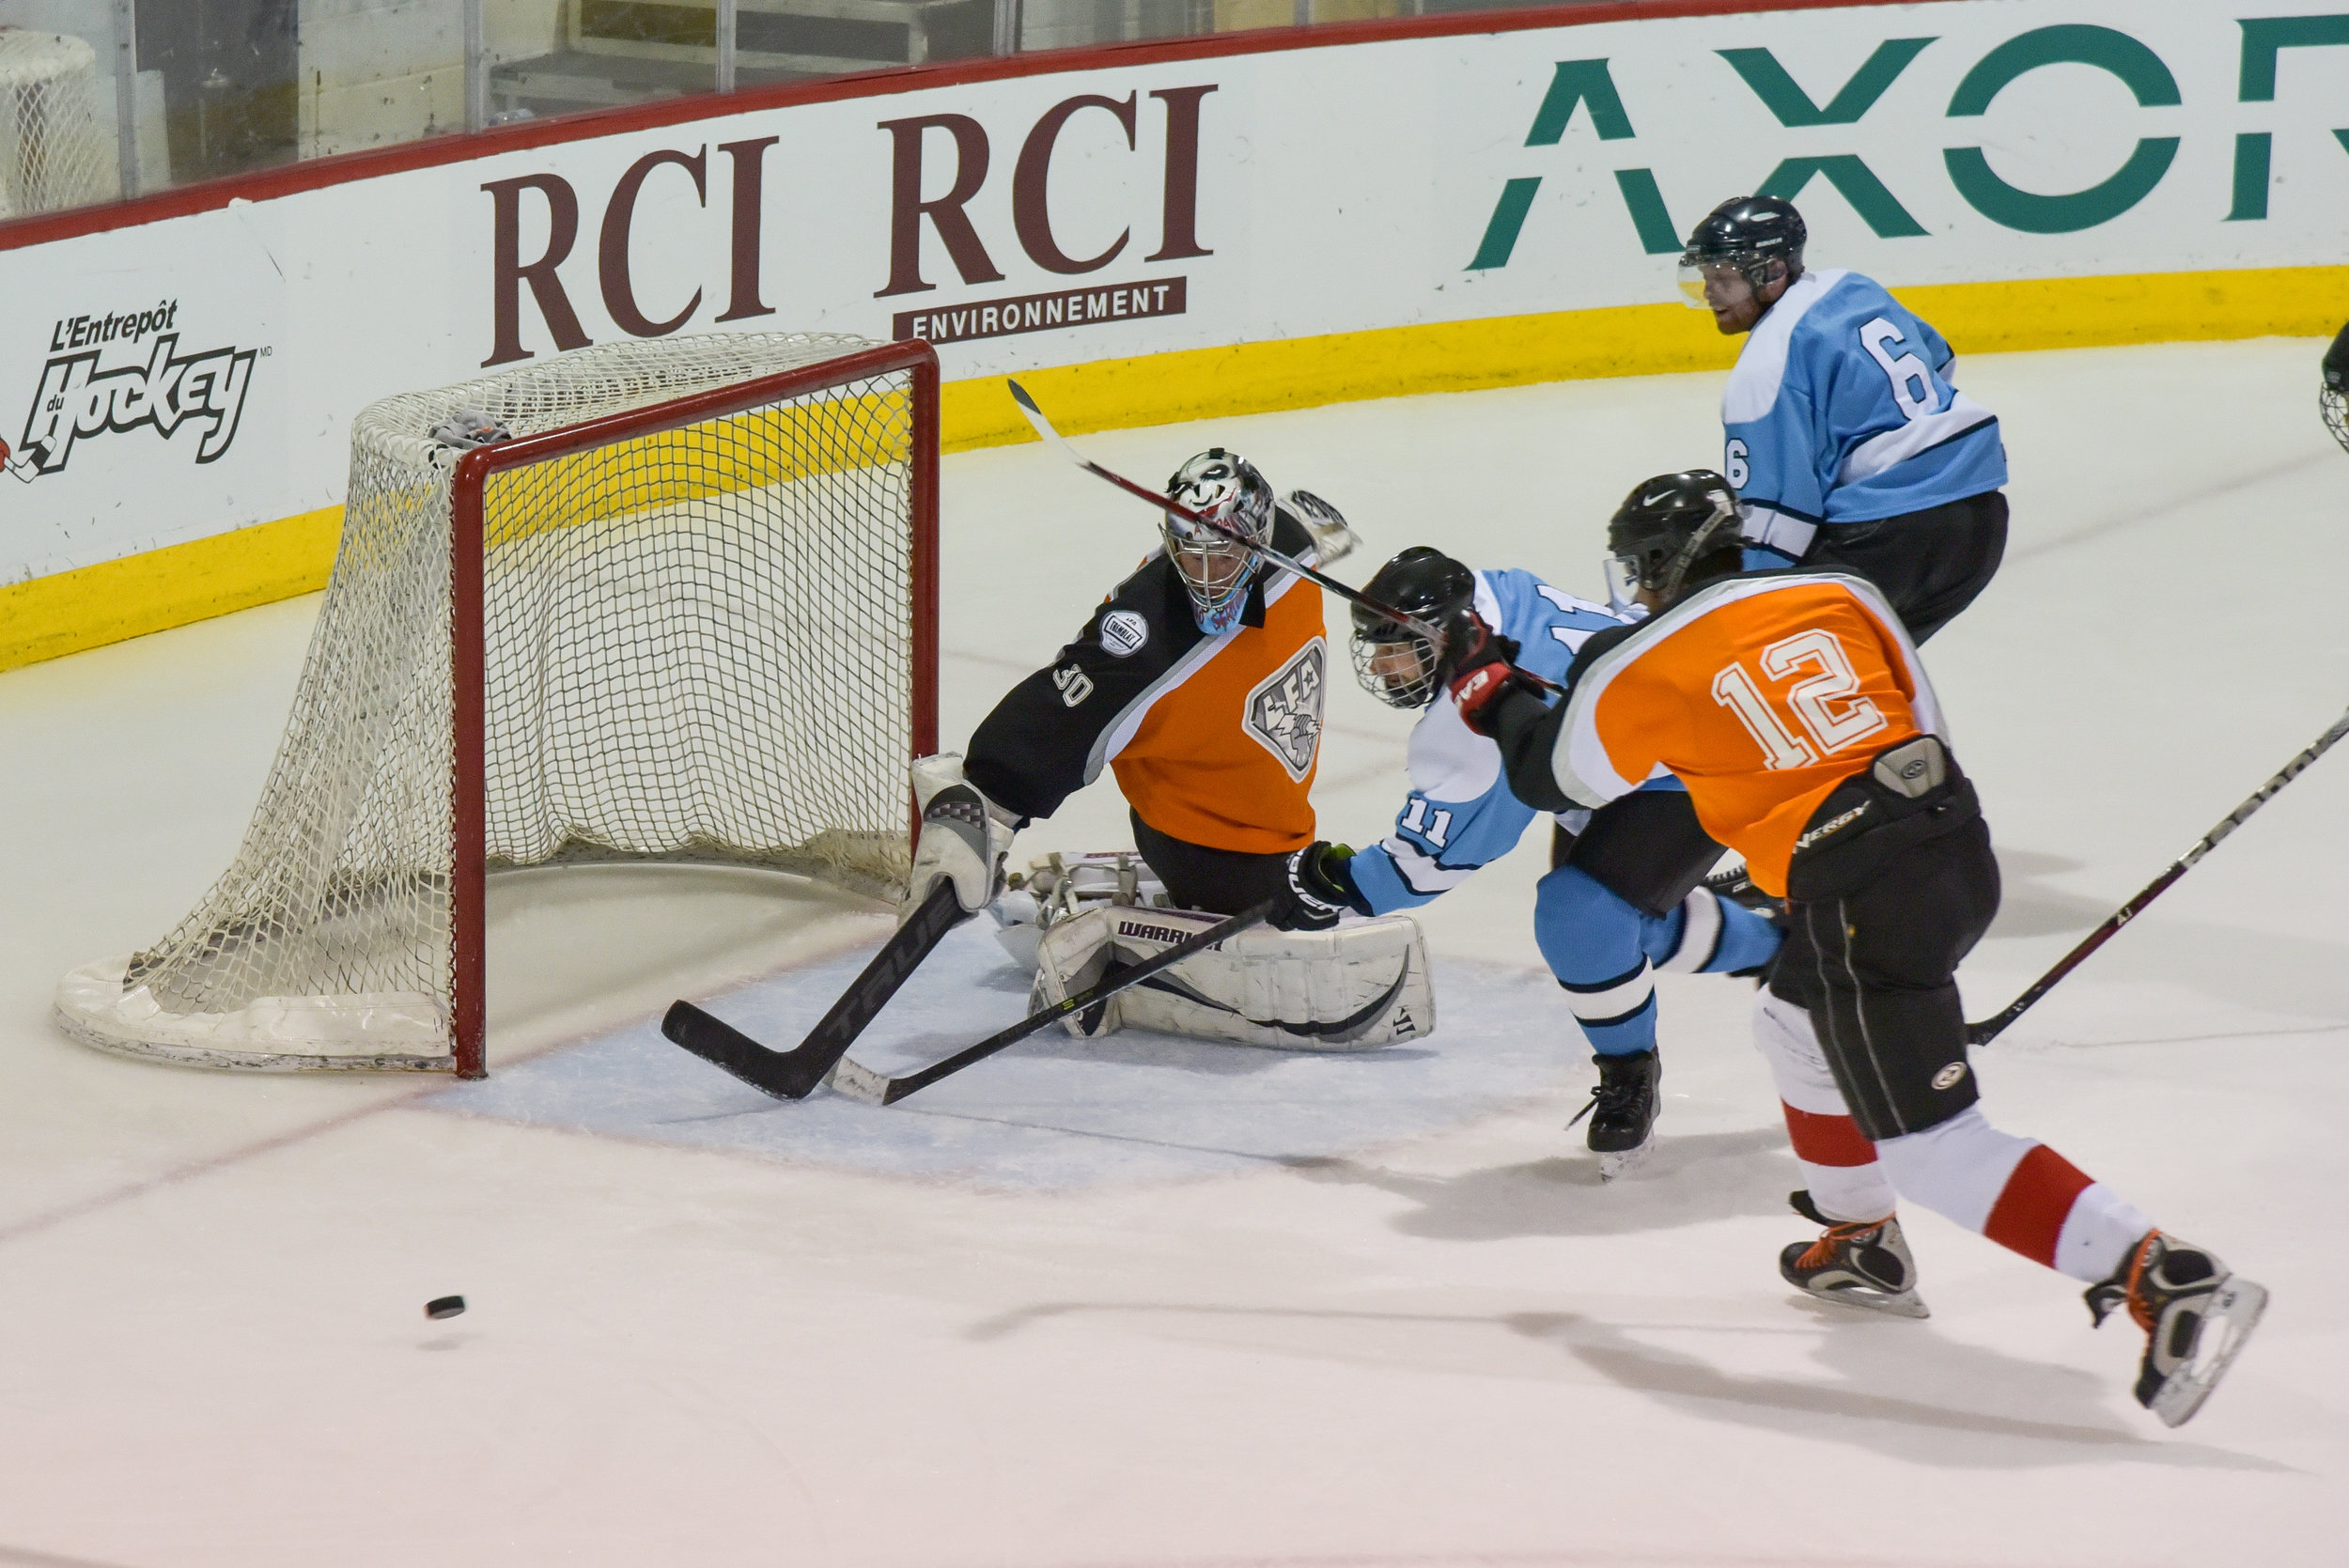 goalies are not the only ones to blame in high scoring games but the league had to make changes between the pipes to ensure two teams would stay in the race (PHOTO MANLI QUE)